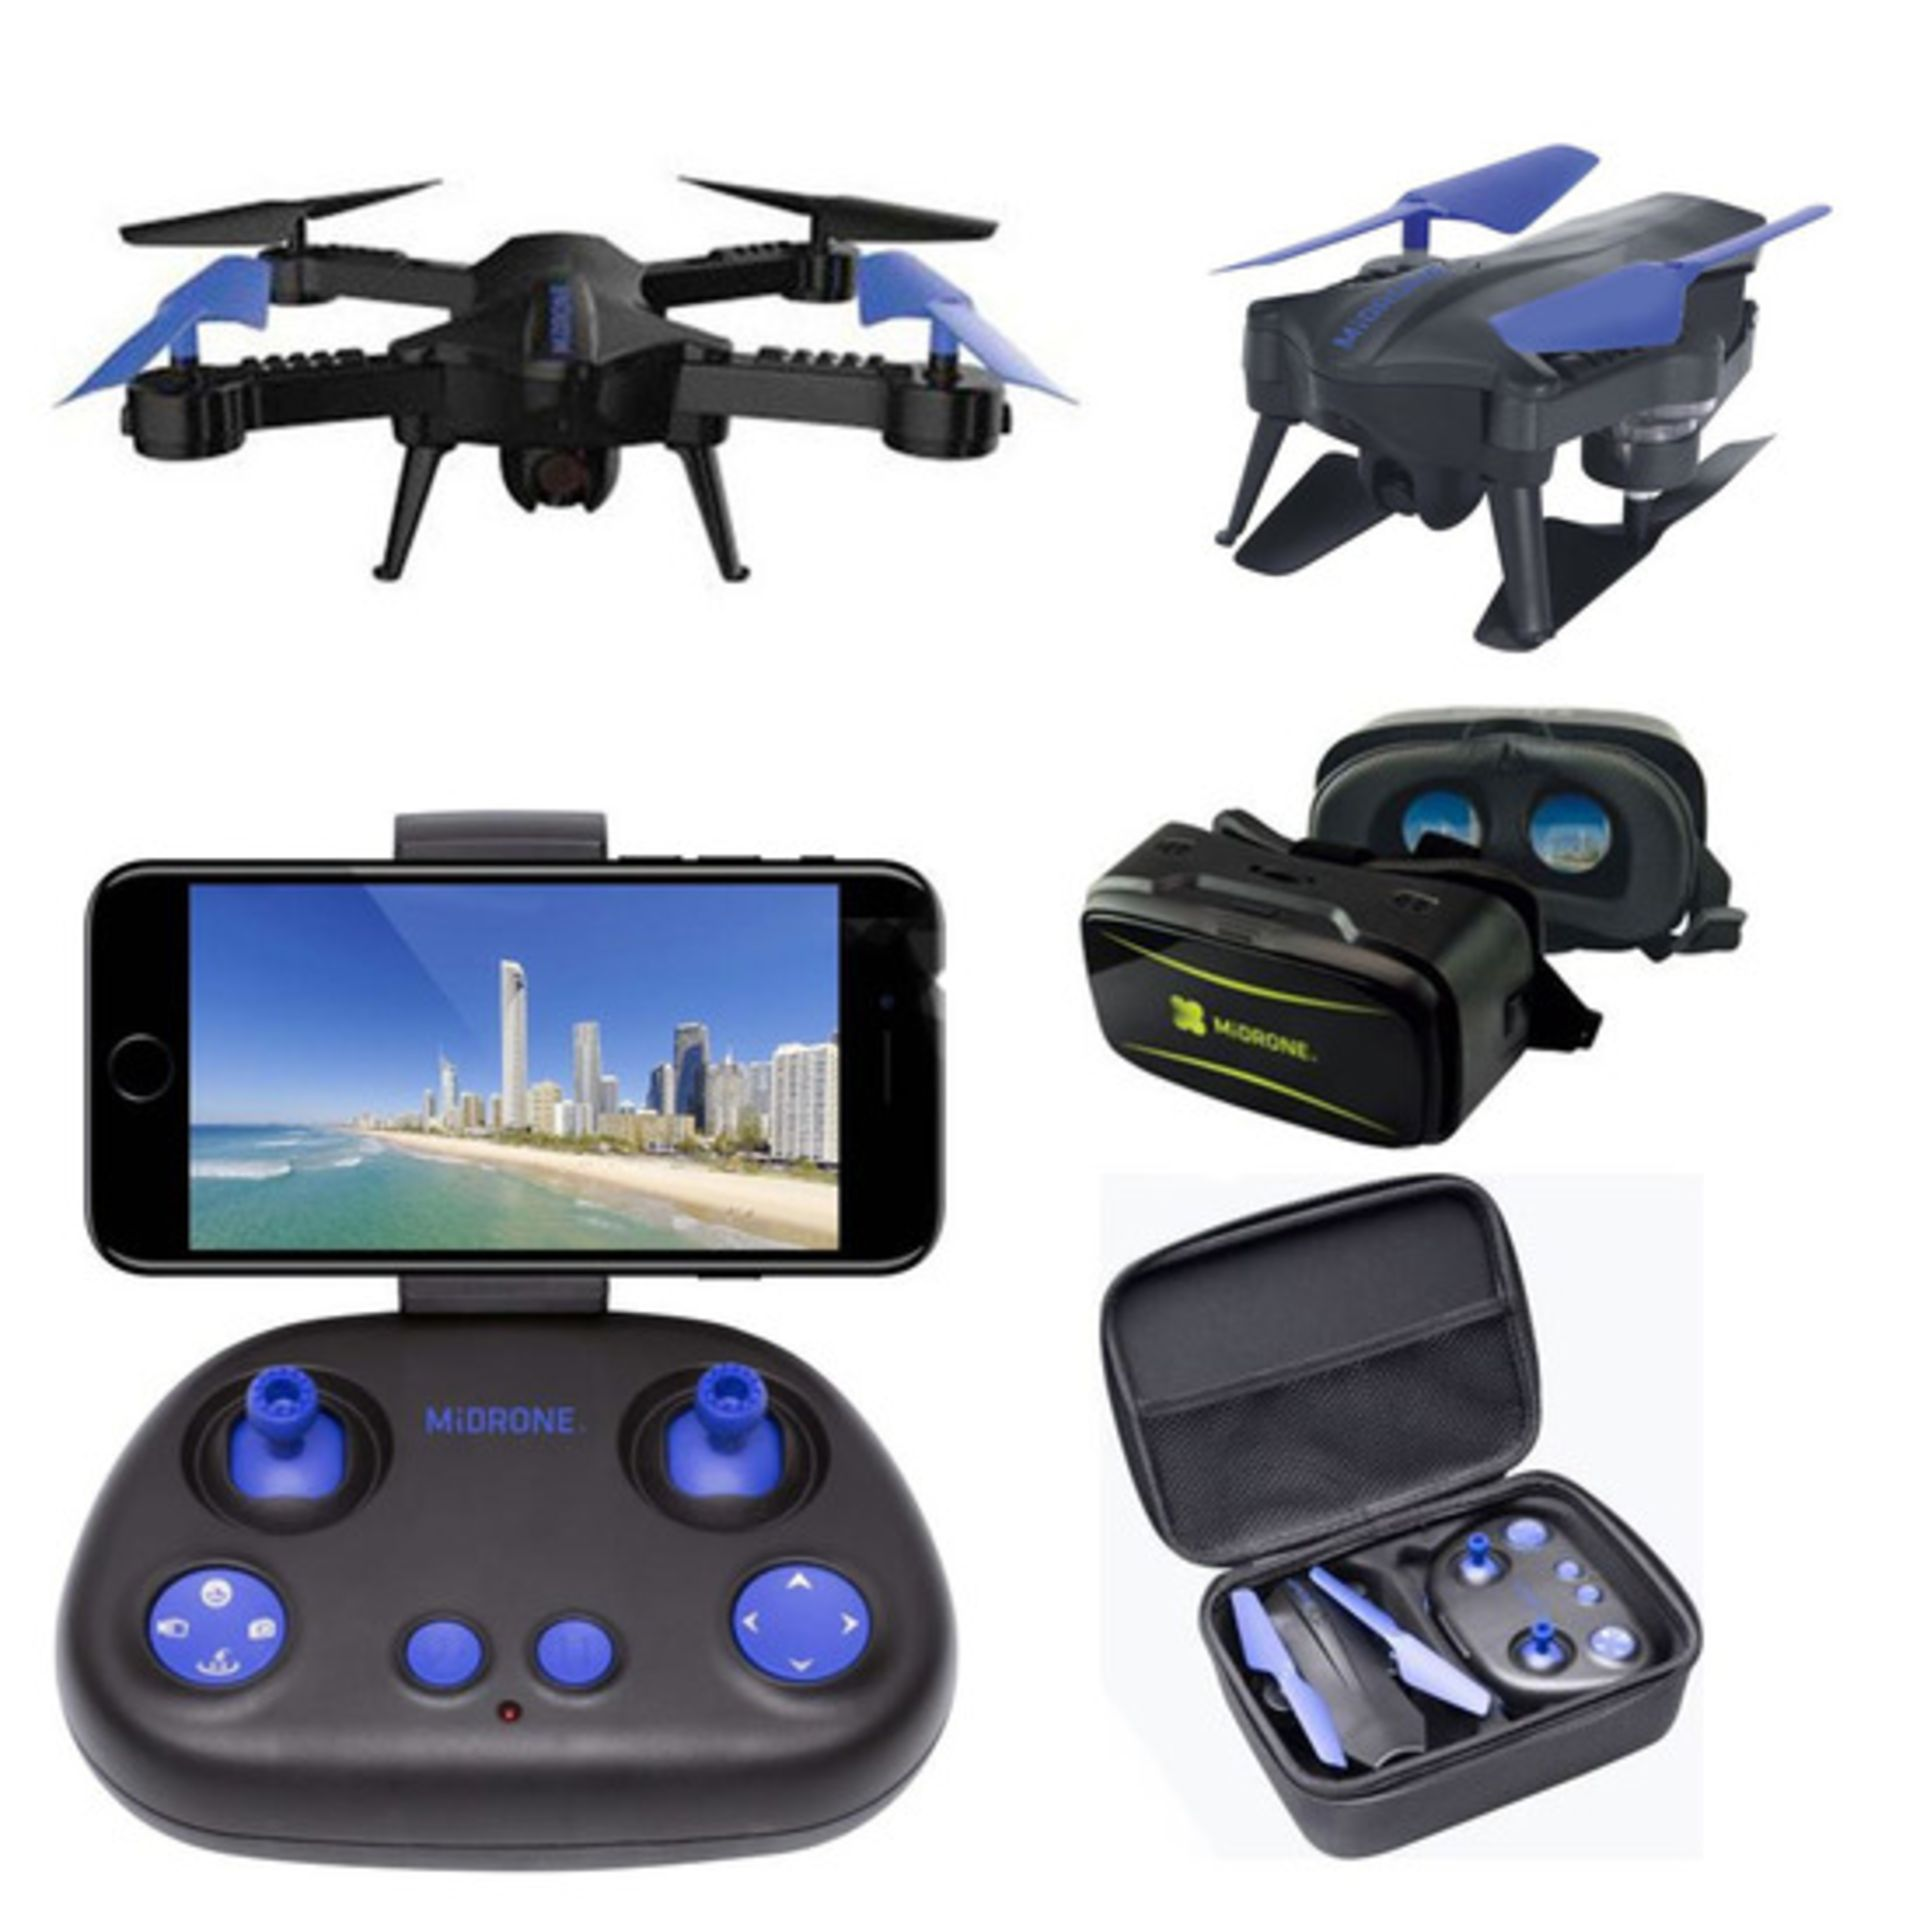 Lot 15788 - V Brand New MiDrone HD WiFi Drone With Intergrated Full HD Camera PLUS VR Kit (Goggles & Case) -